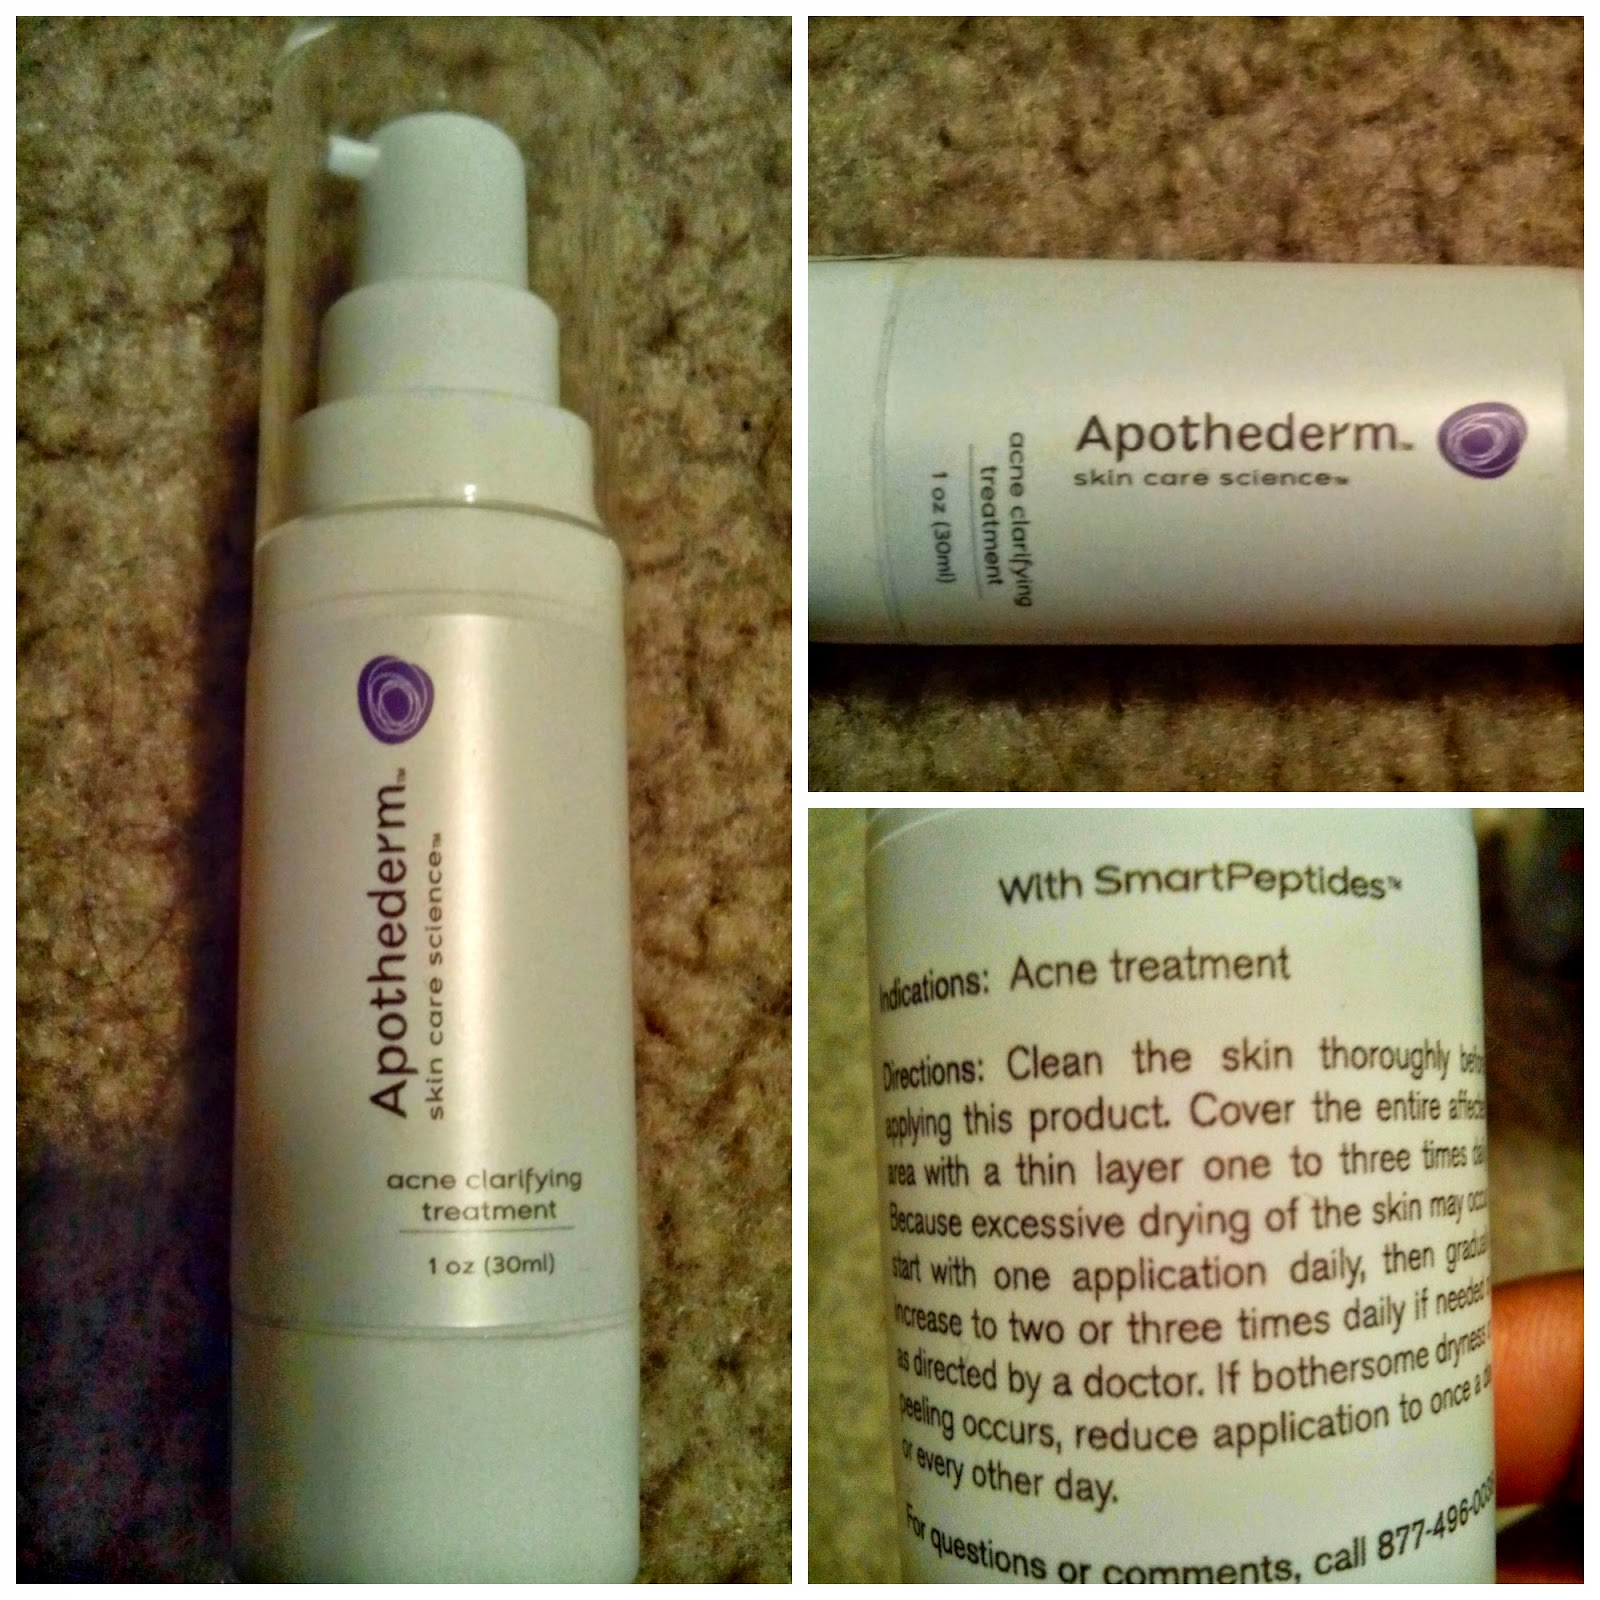 Apothederm, Skin Care, Science, Acne, Clarifying, Treatment, Acne treatment,